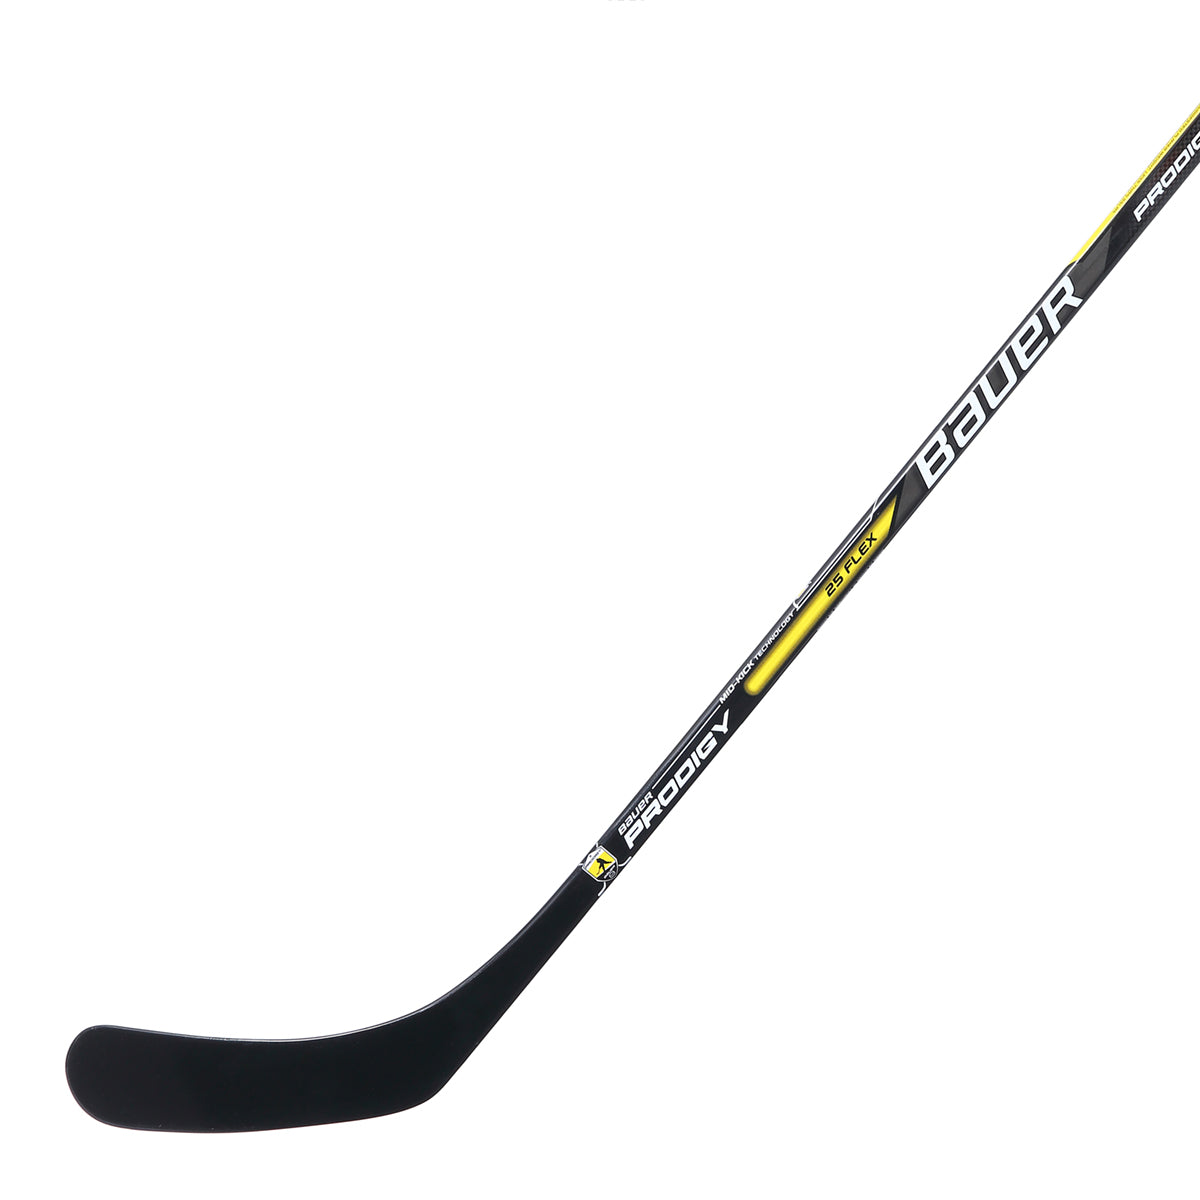 Bauer Prodigy - Youth